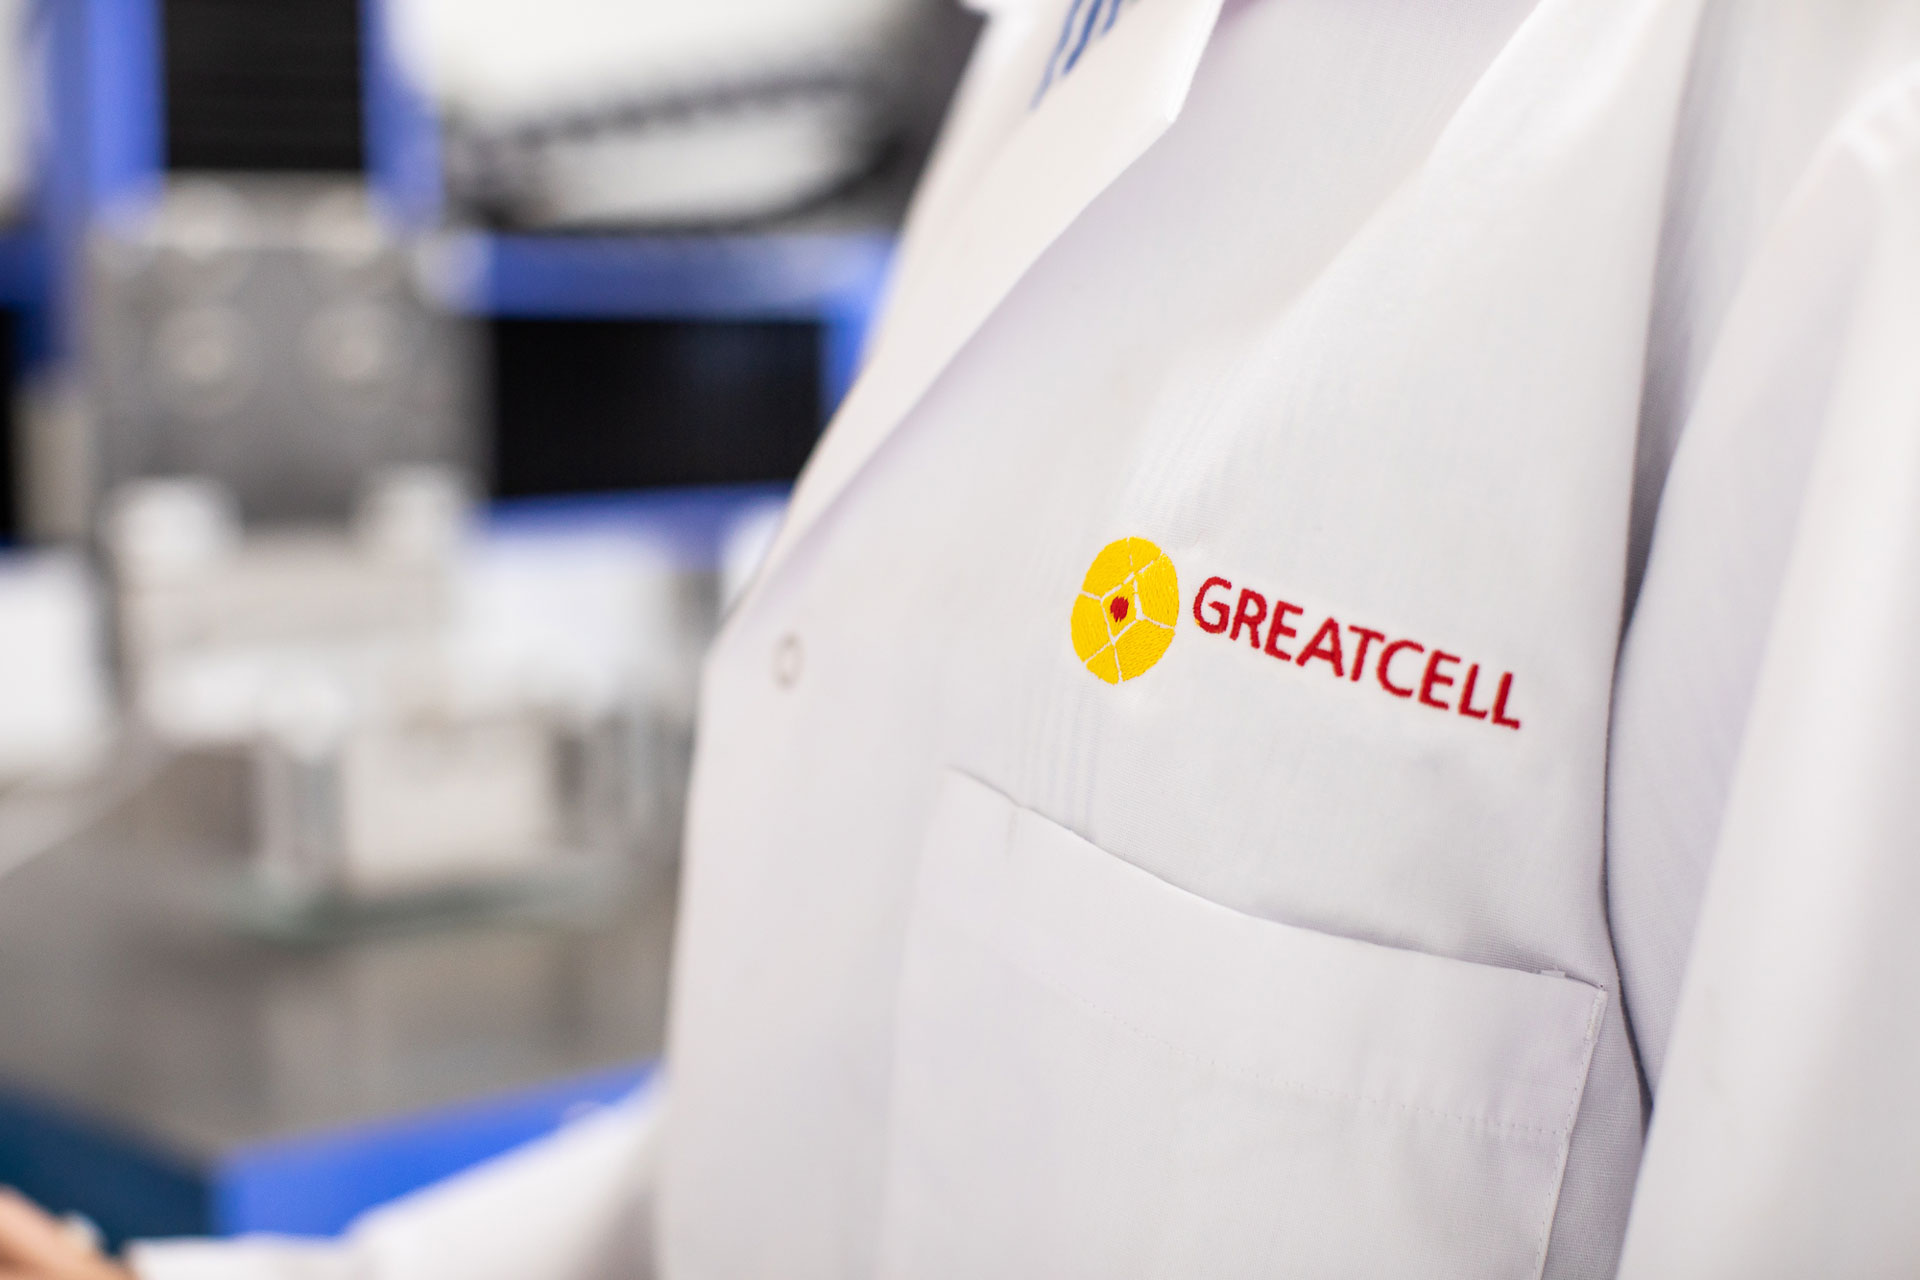 The Board of Greatcell Energy has been significantly strengthened by the recent appointment of Andrew Carstens as a Director and Uwe Boettcher and Sylvia Tulloch as Alternate Directors.